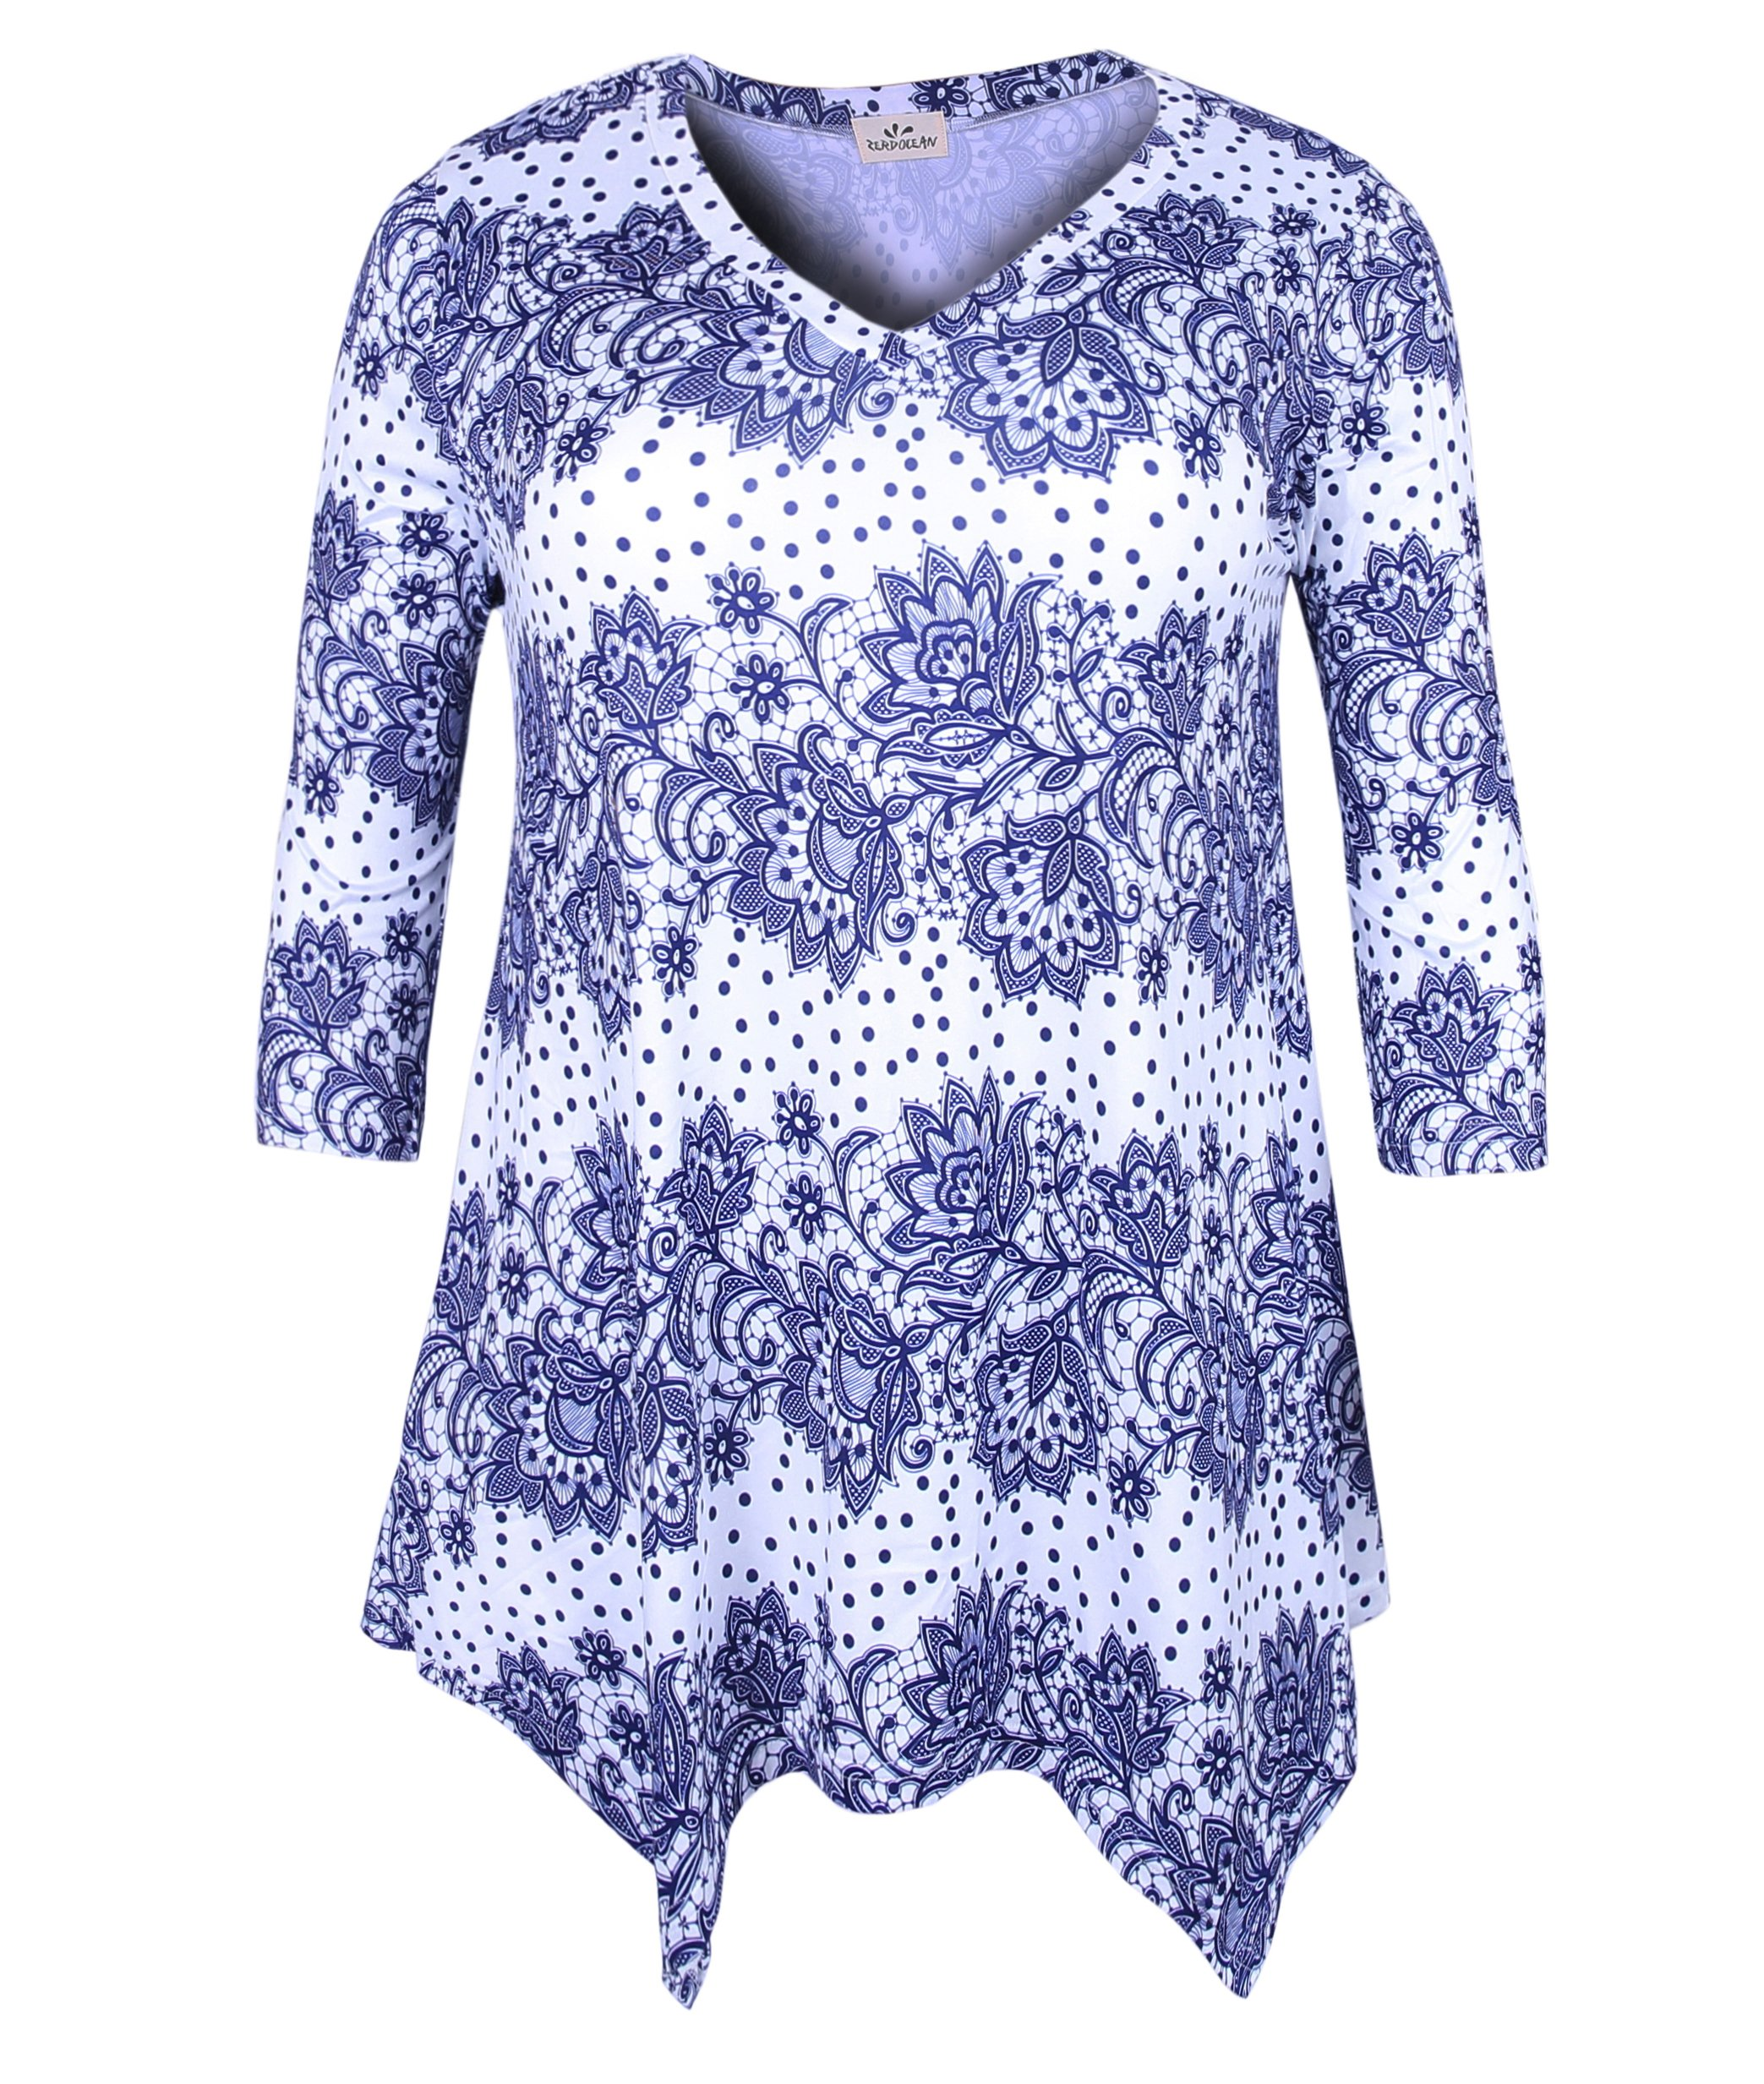 ZERDOCEAN Women's Plus Size Printed 3/4 Sleeve Tunic Top Loose Shirt Style-109 2X